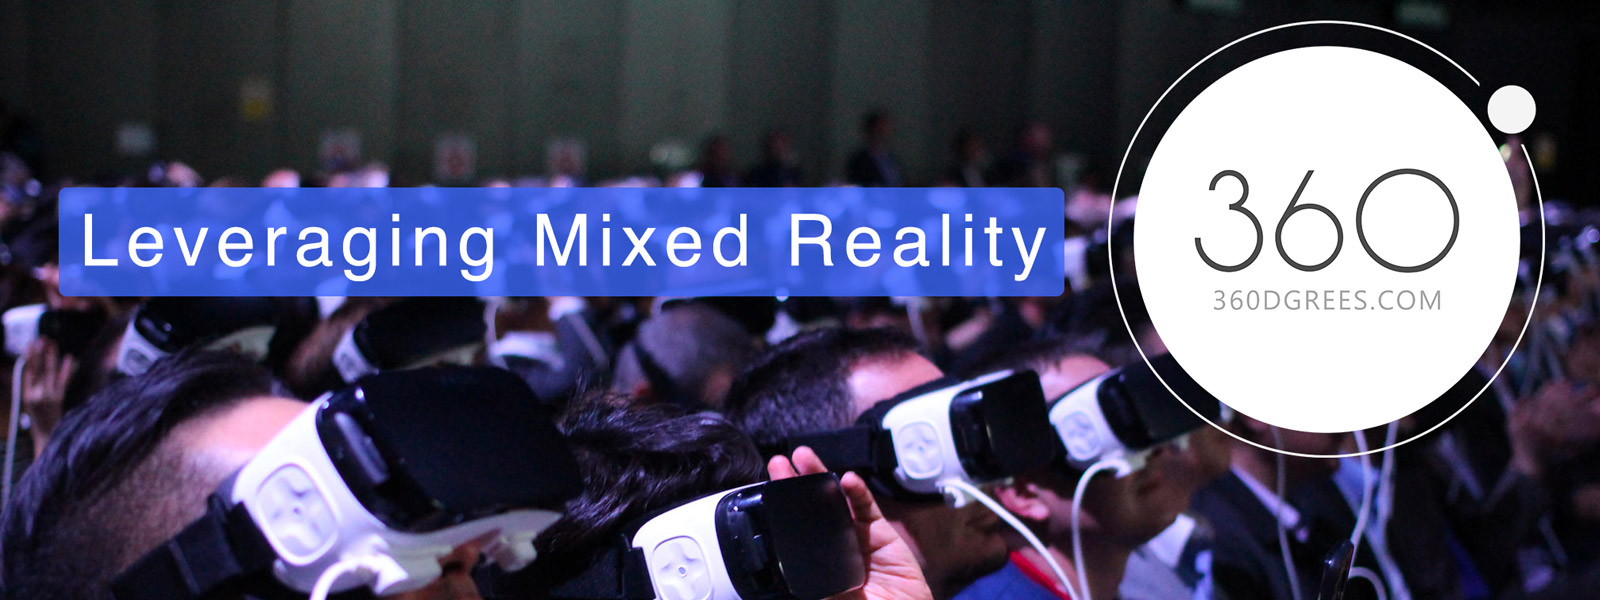 Leveraging Mixed Reality